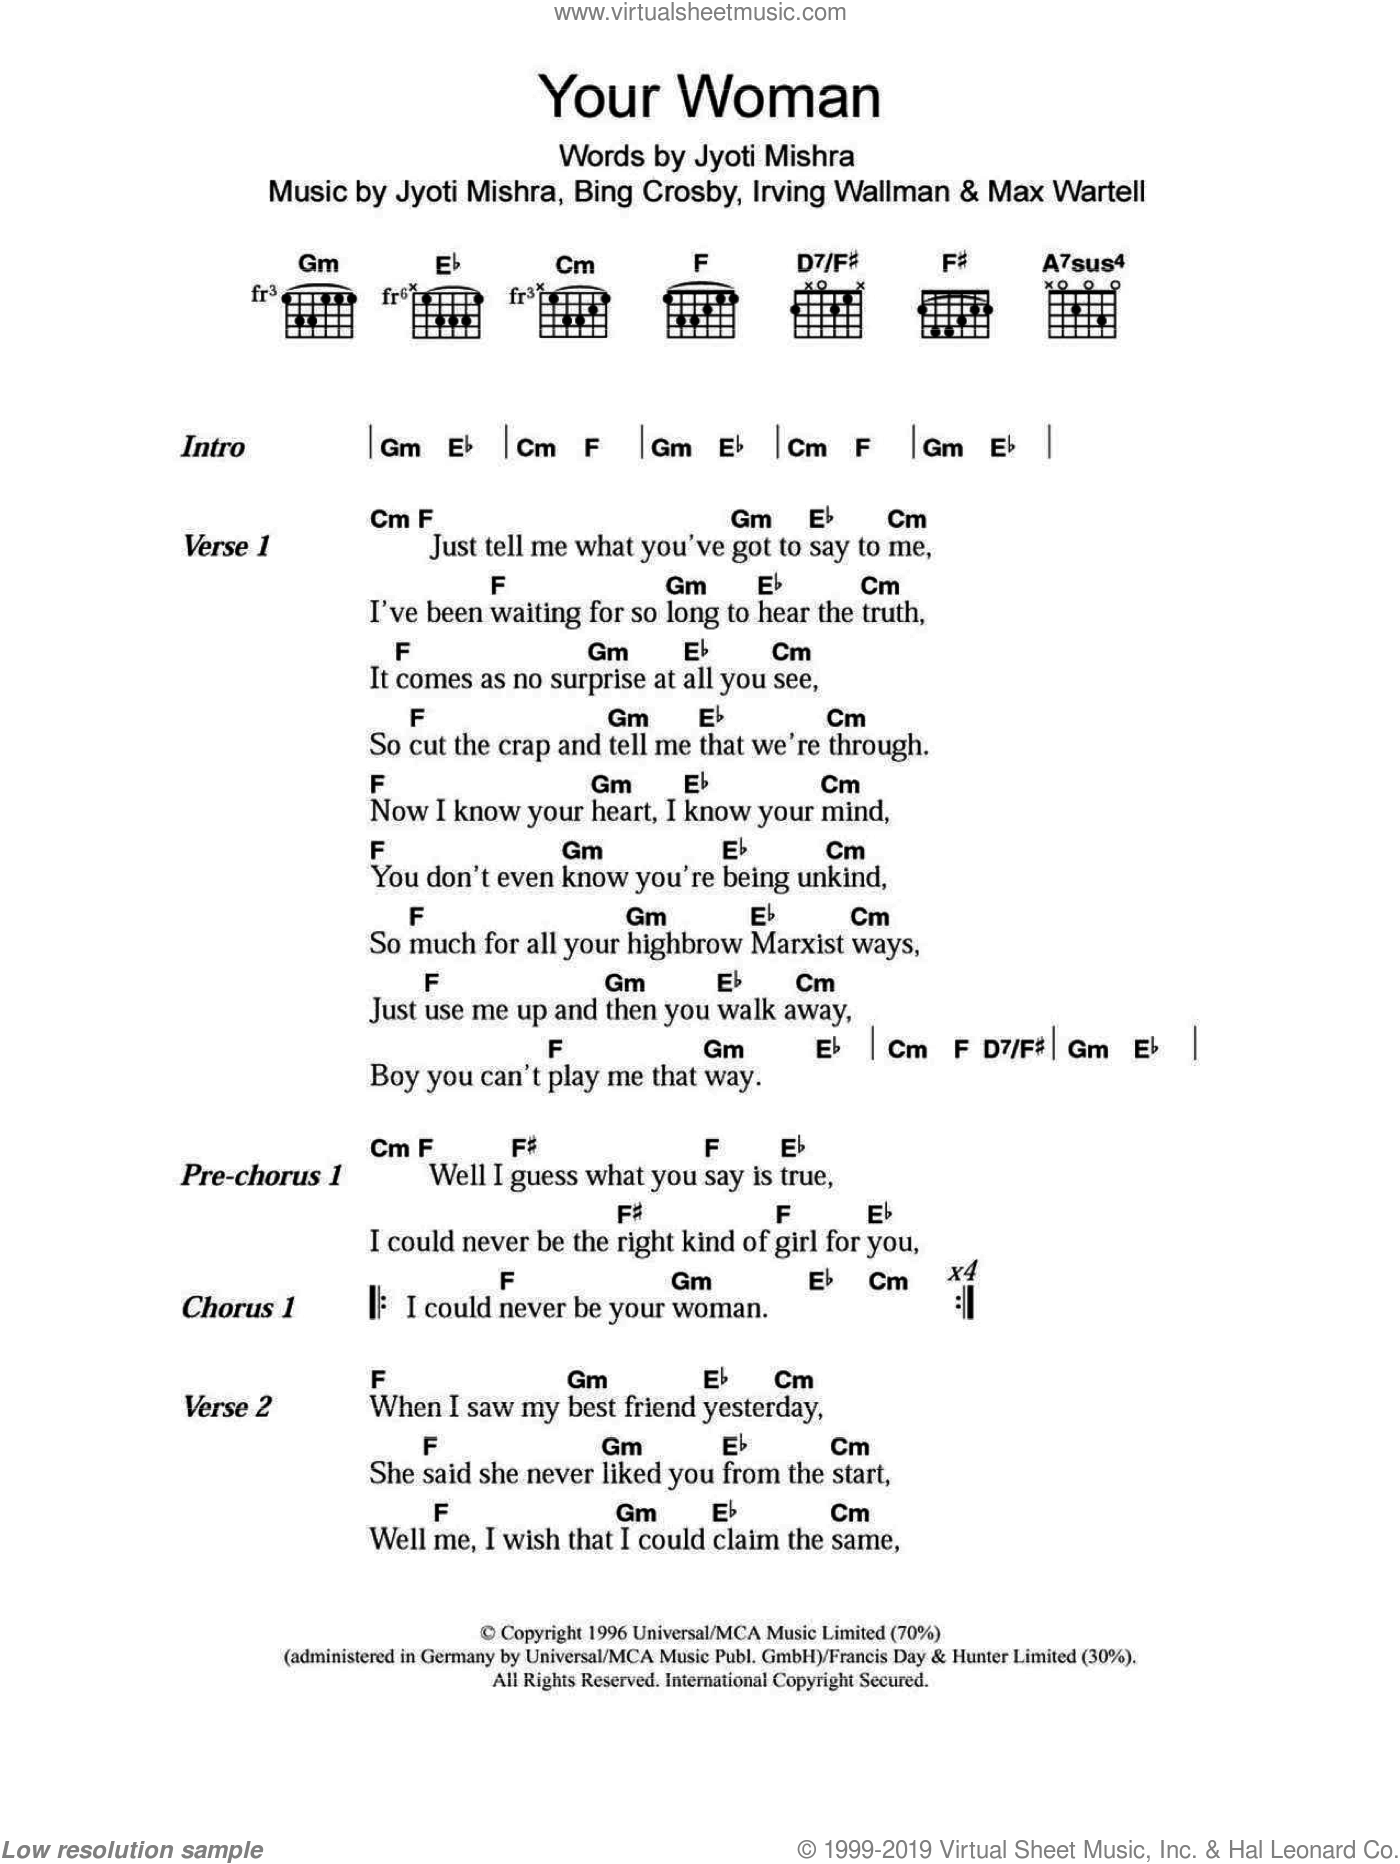 Your Woman sheet music for guitar (chords, lyrics, melody) by Max Wartell